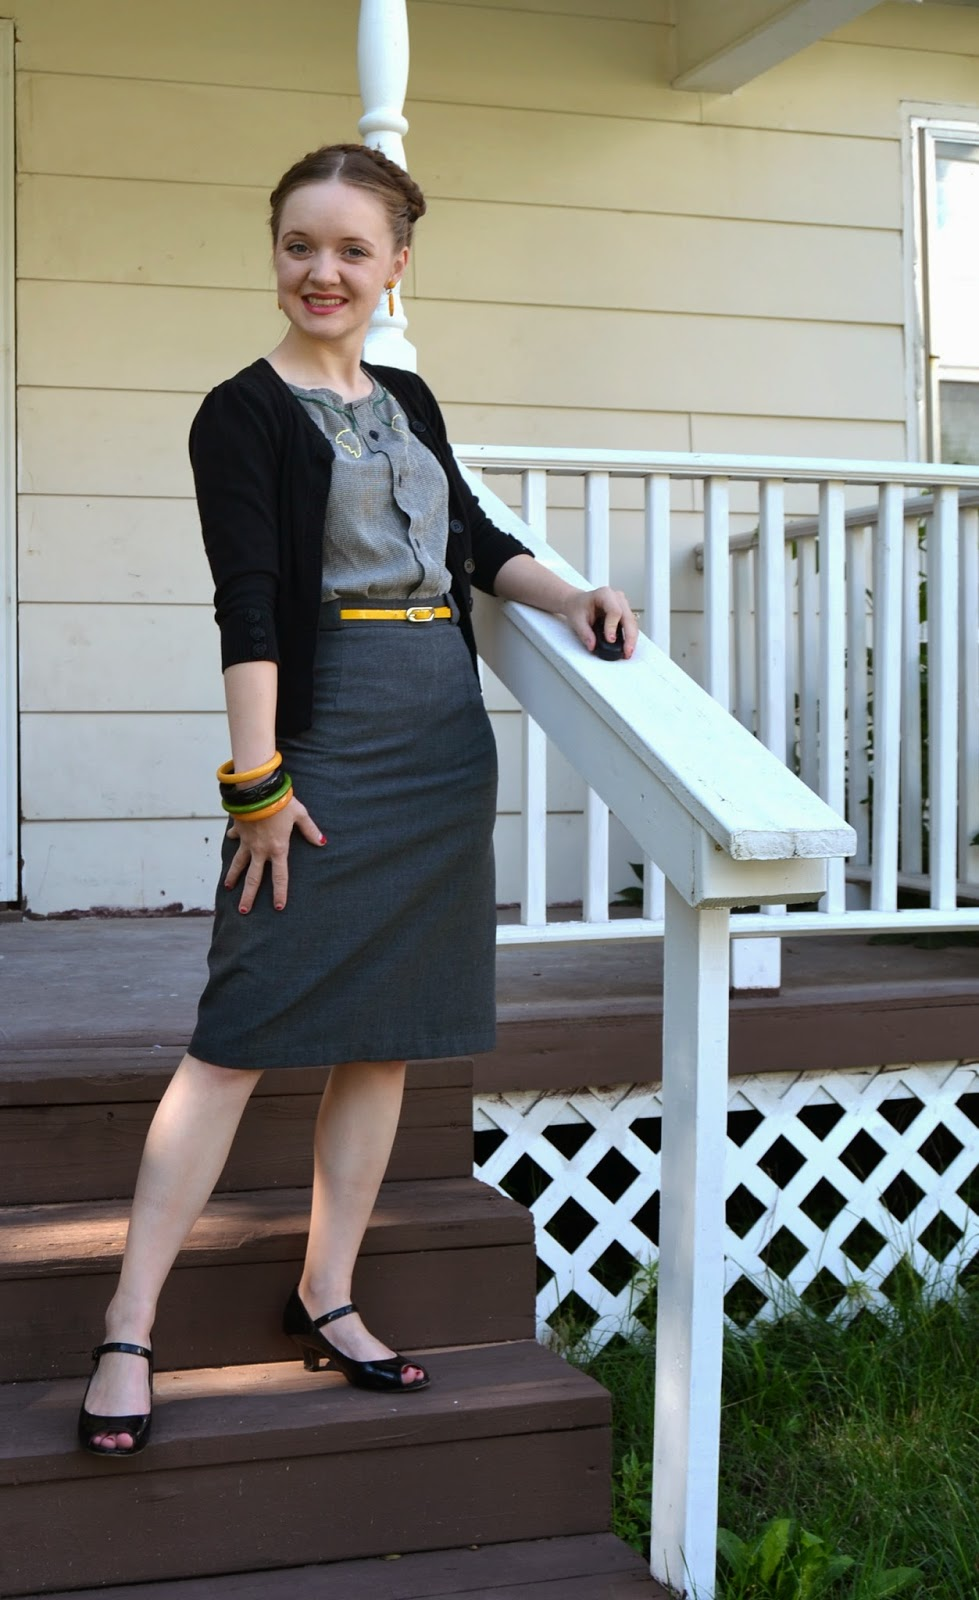 Flashback Summer: Tulips and Bakelite - 1940s vintage outfit